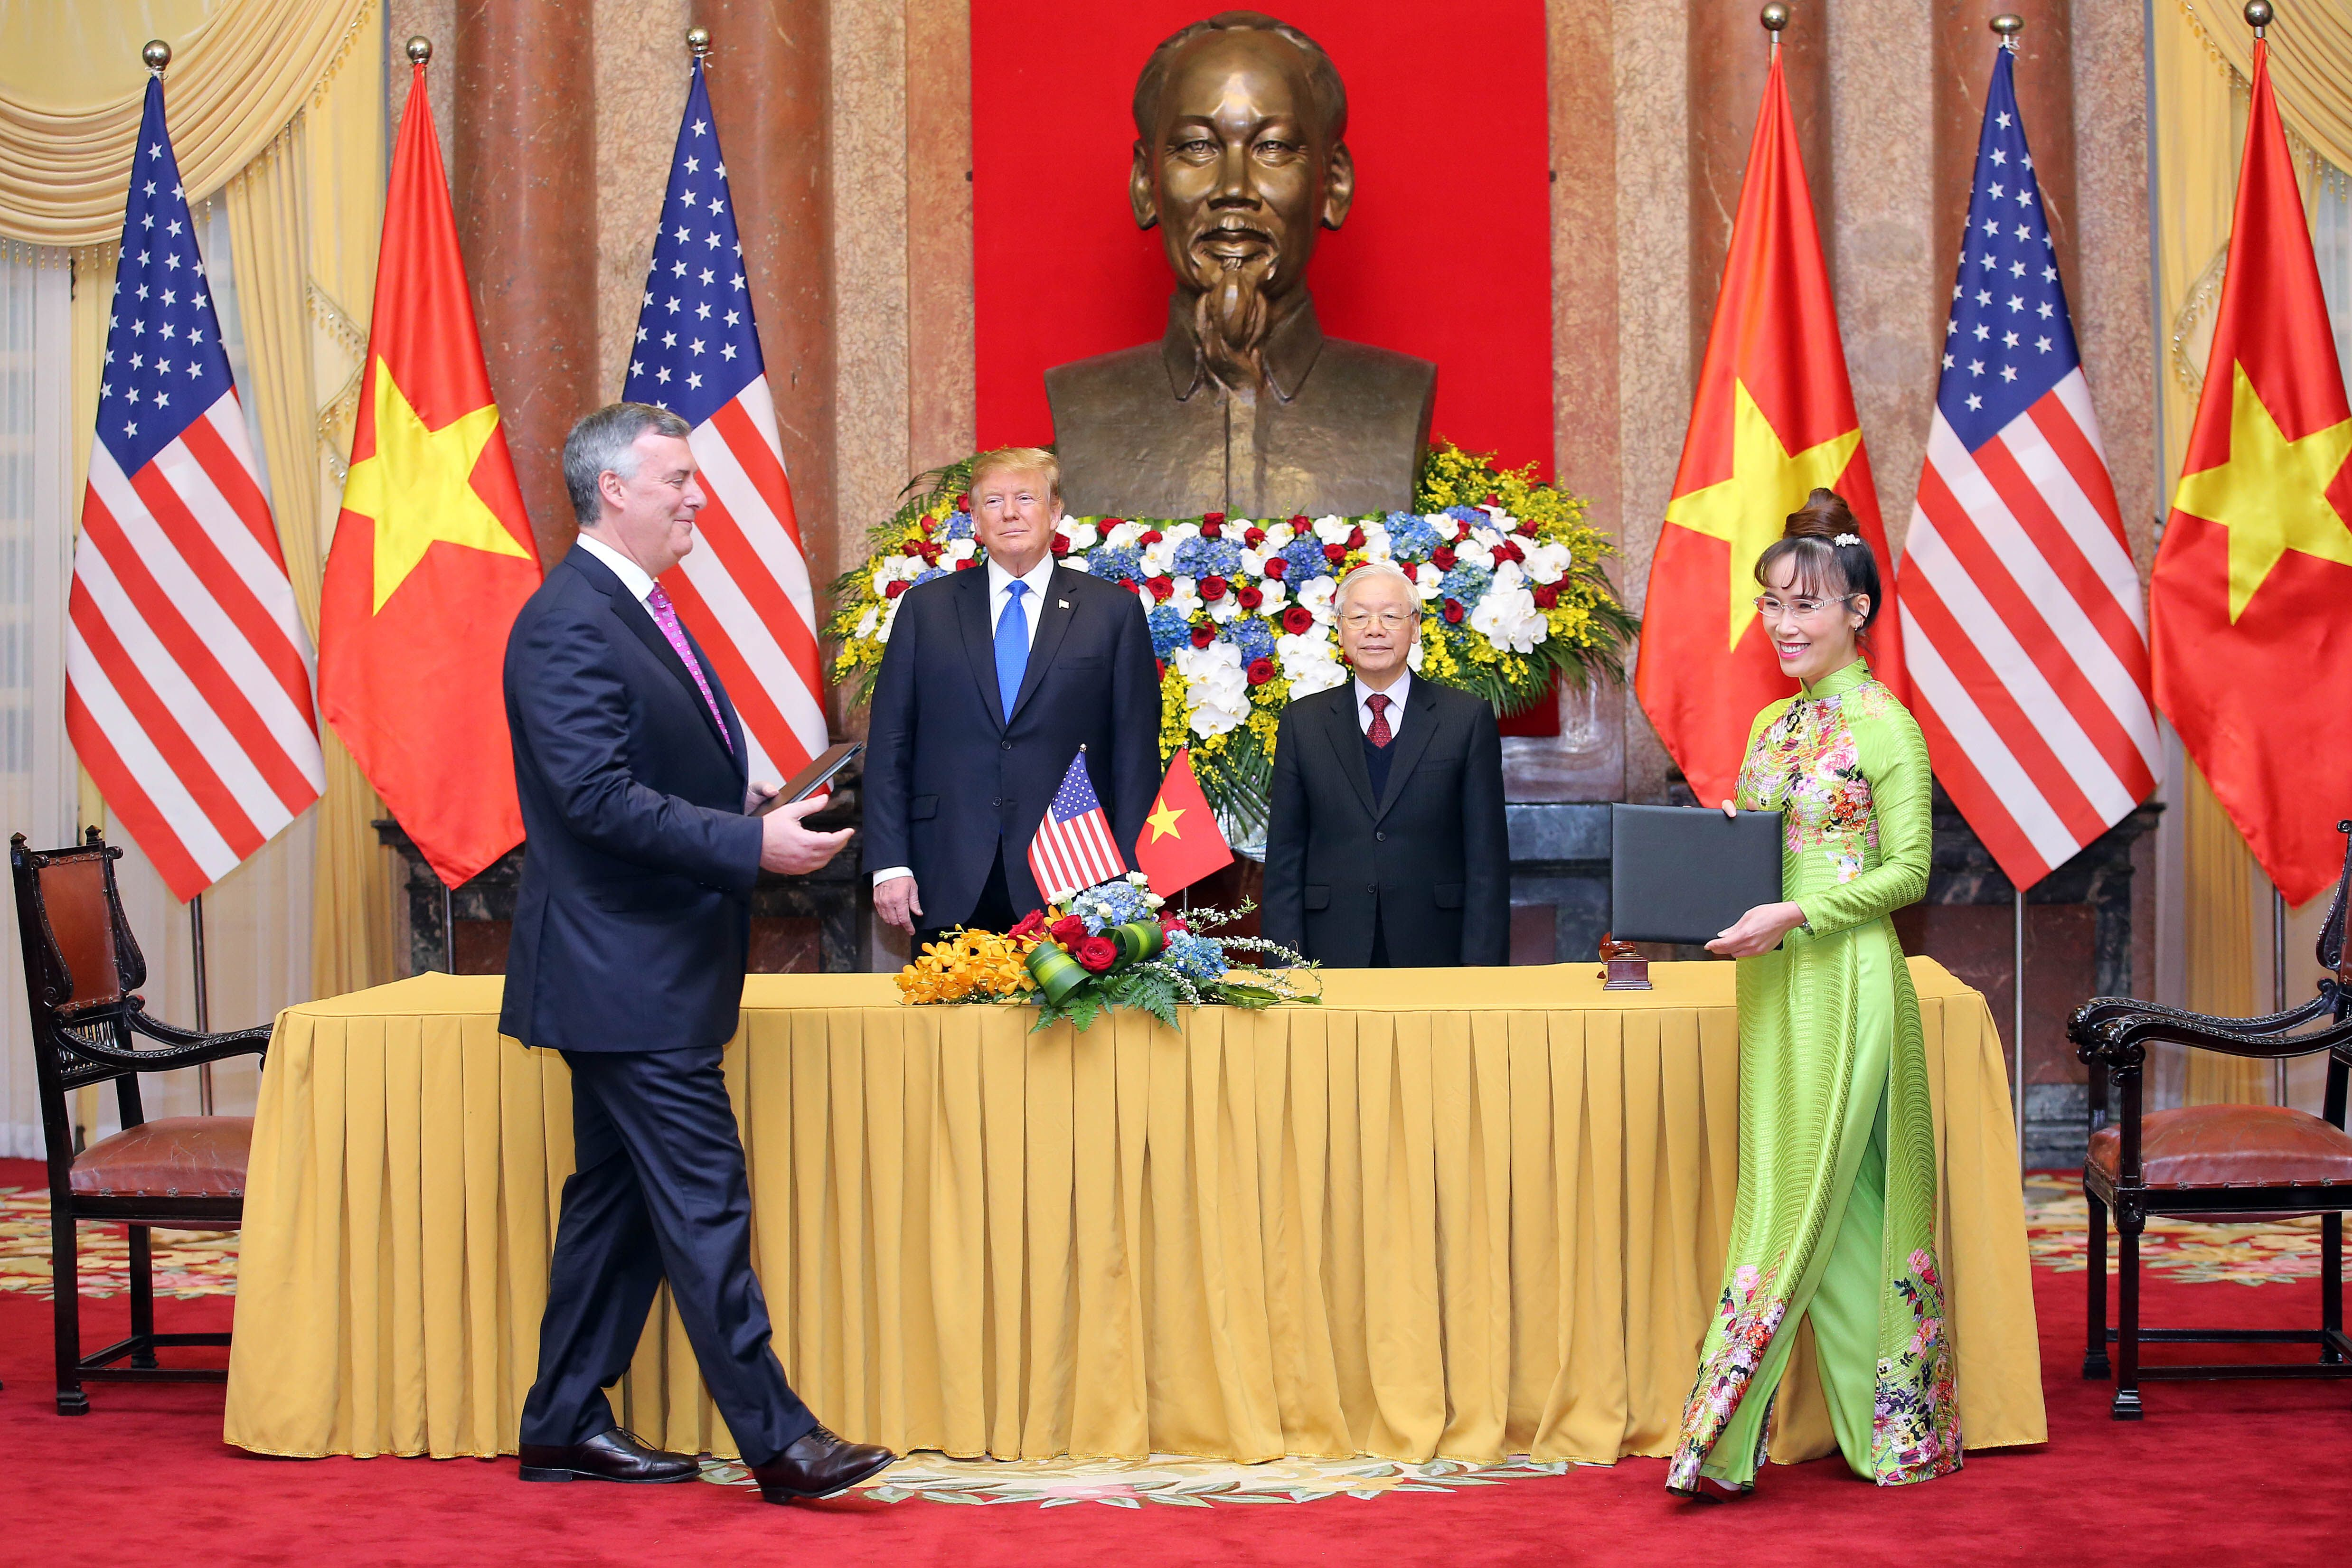 President Trump (center, left) and his Vietnamese counterpart Nguyen Phu Trong (center, right) witness a signing ceremony between President and CEO of VietJet aviation join stock company Nguyen Thi Phuong Thao (right) and President and CEO of Boeing Commercial Airplanes Kevin McAllister (left) in February